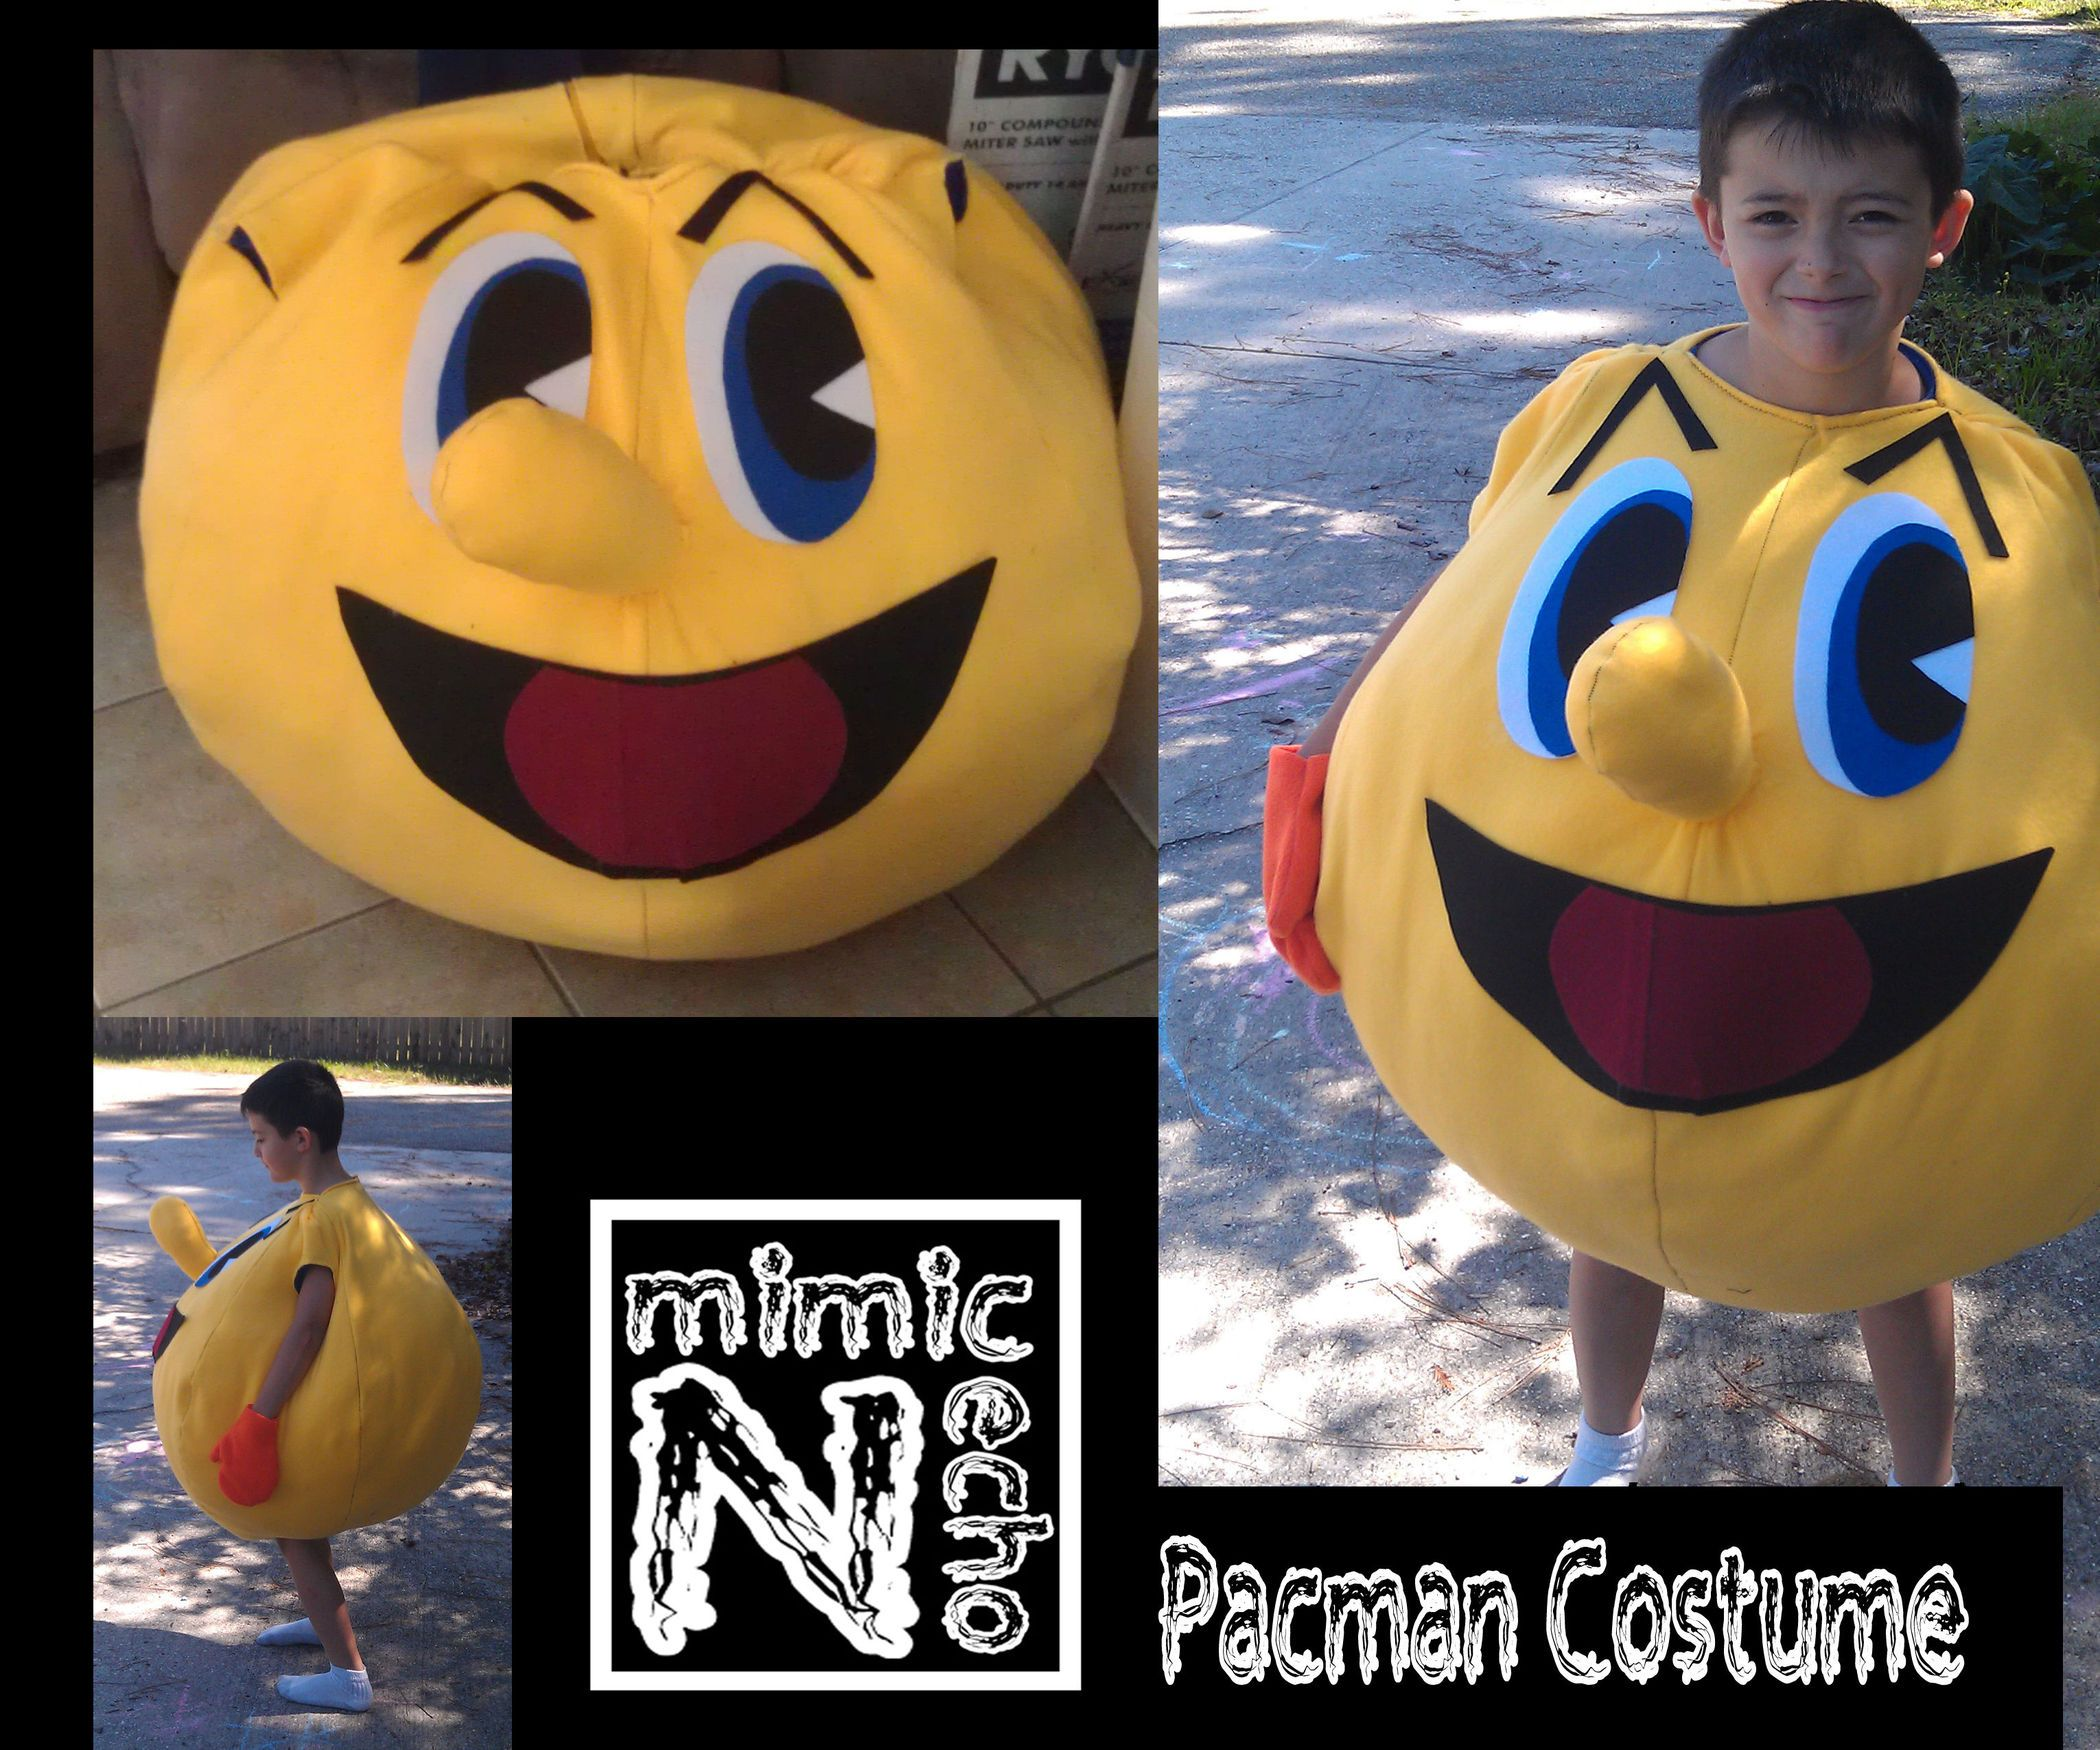 Pac man costume slutty halloween